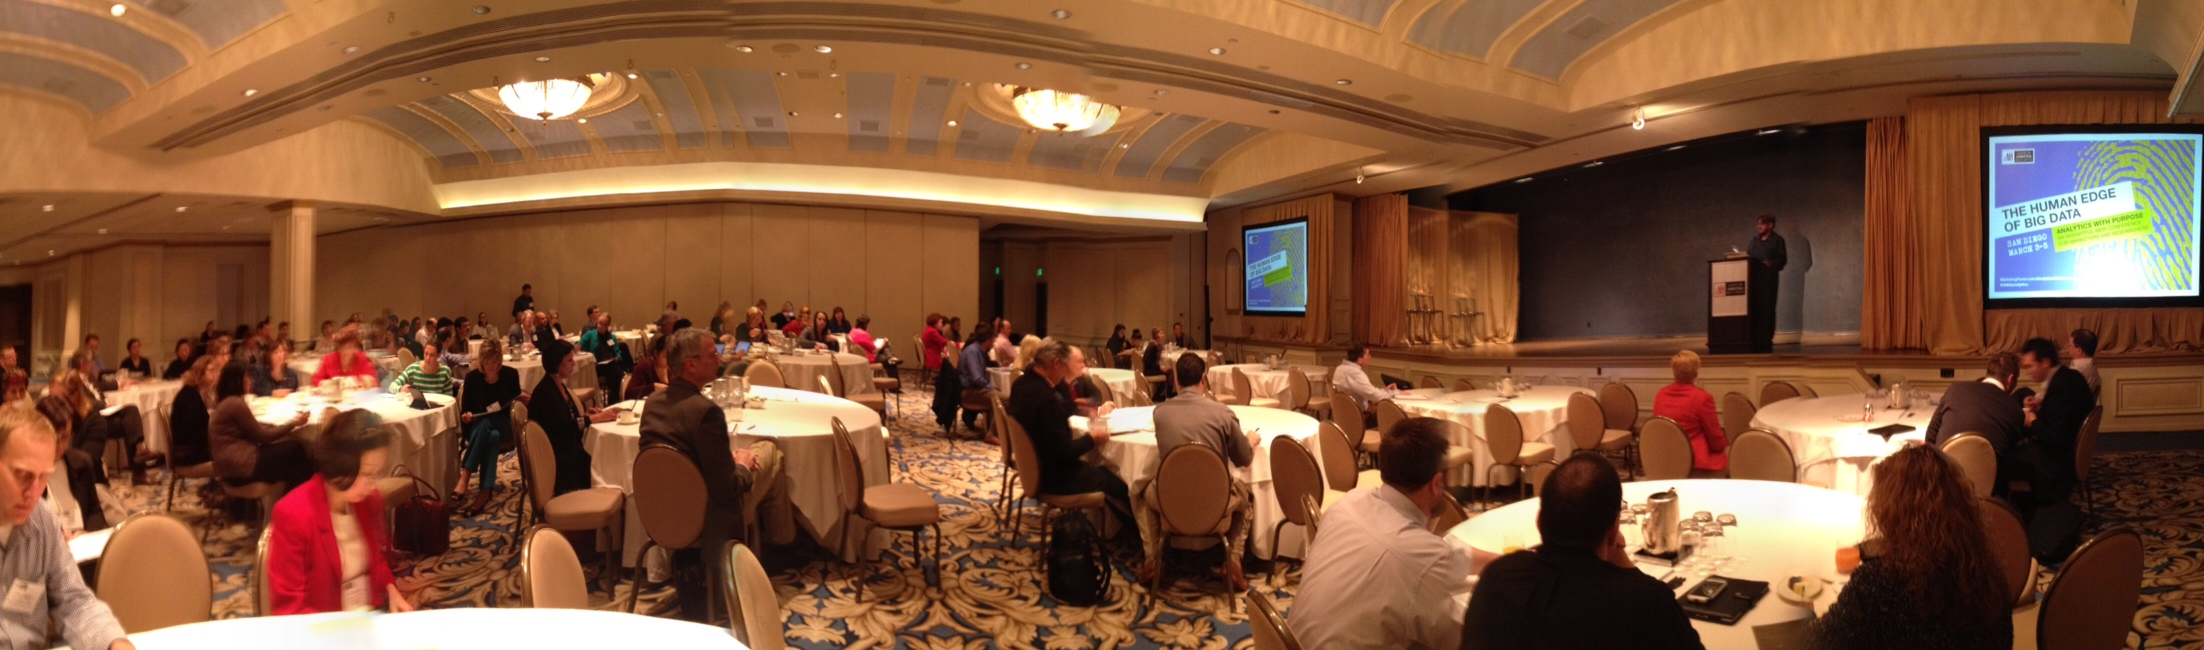 A panorama of the conference by John Szabo, taken from Brian Juicer's blog (click image for link)